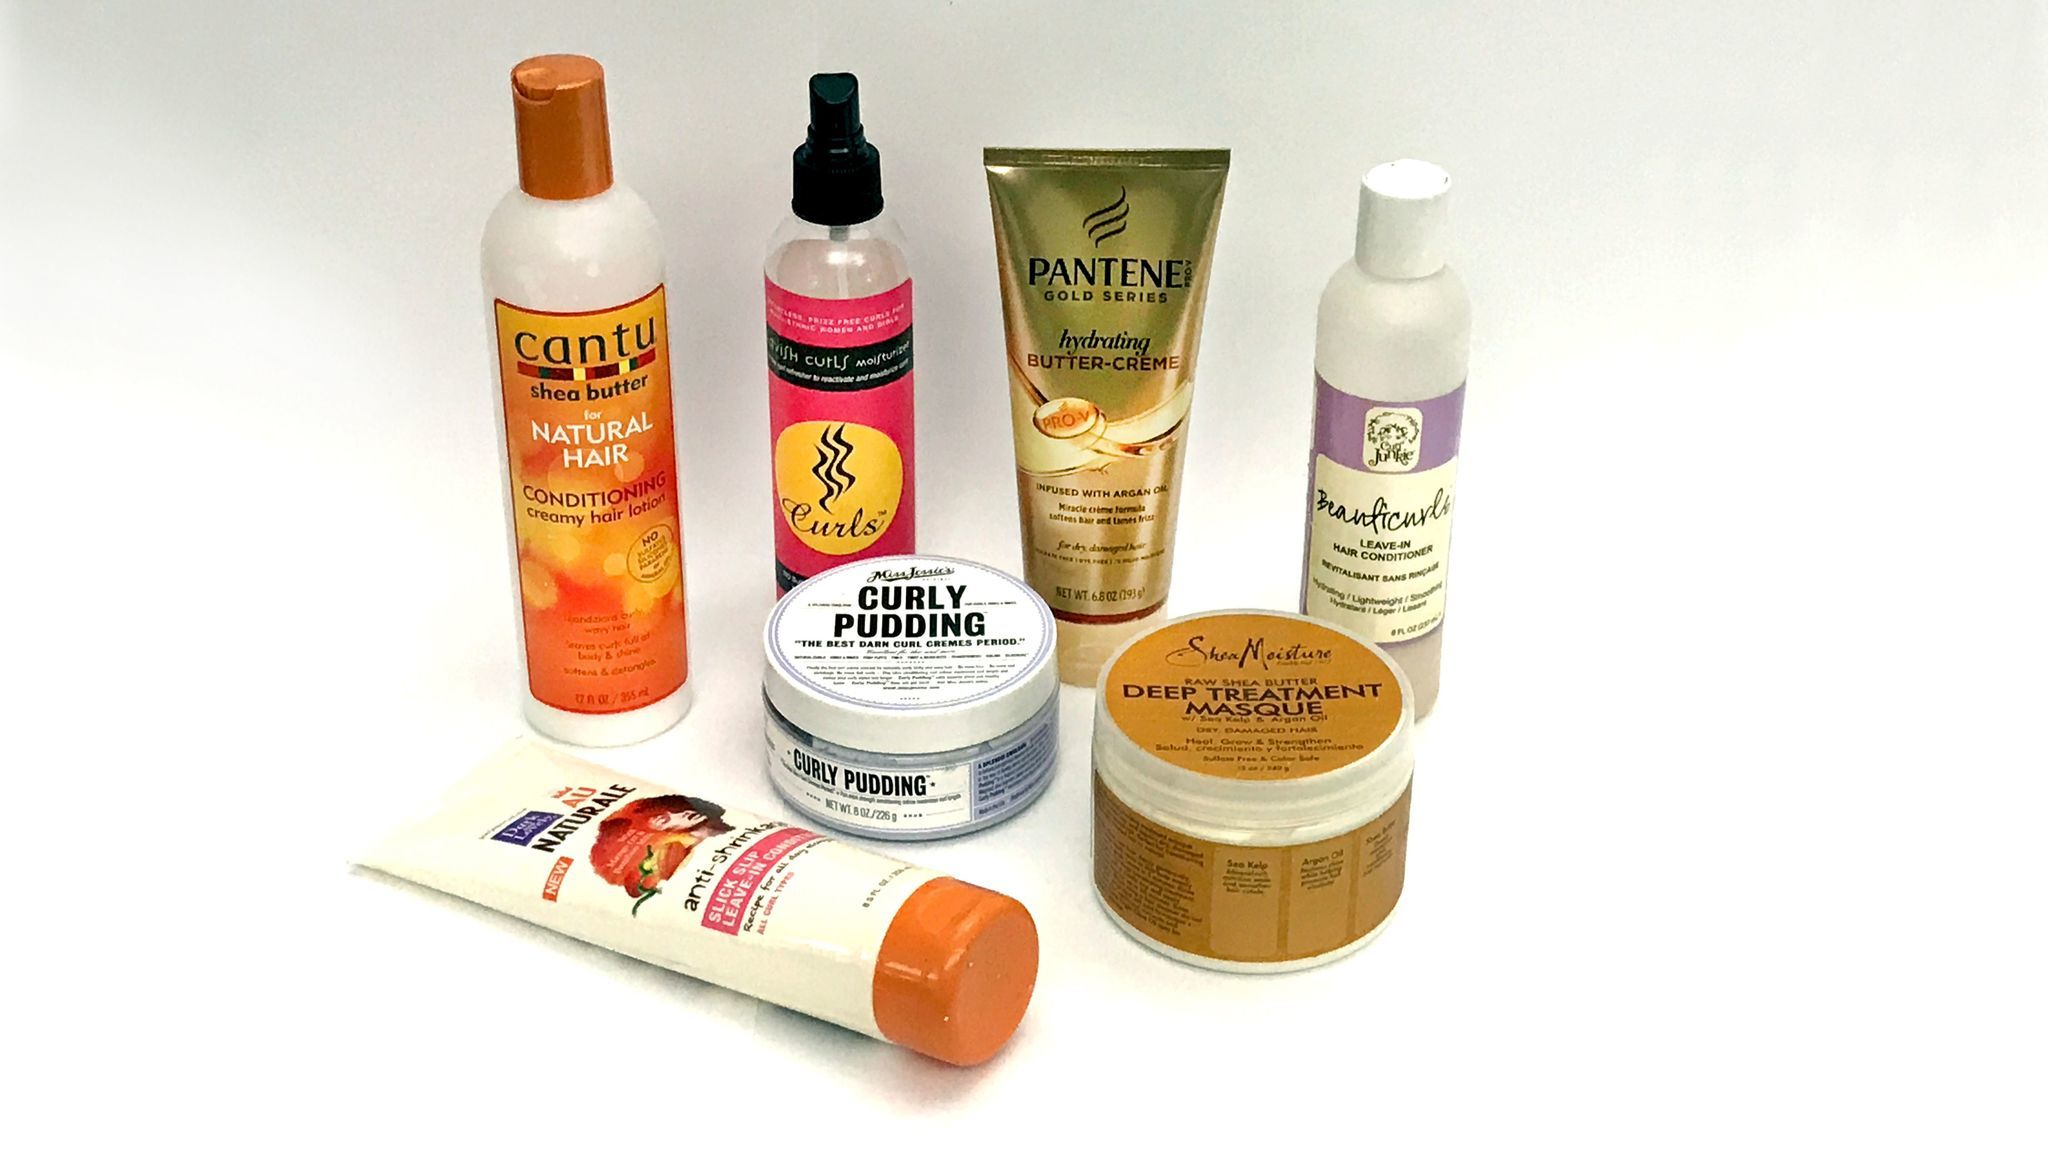 Natural hair has hit the mainstream and companies are eager to cash in. Pictured is a sampling of natural hair products including Cantu, Curls, Miss Jessie's, Au Naturale and SheaMoisture.